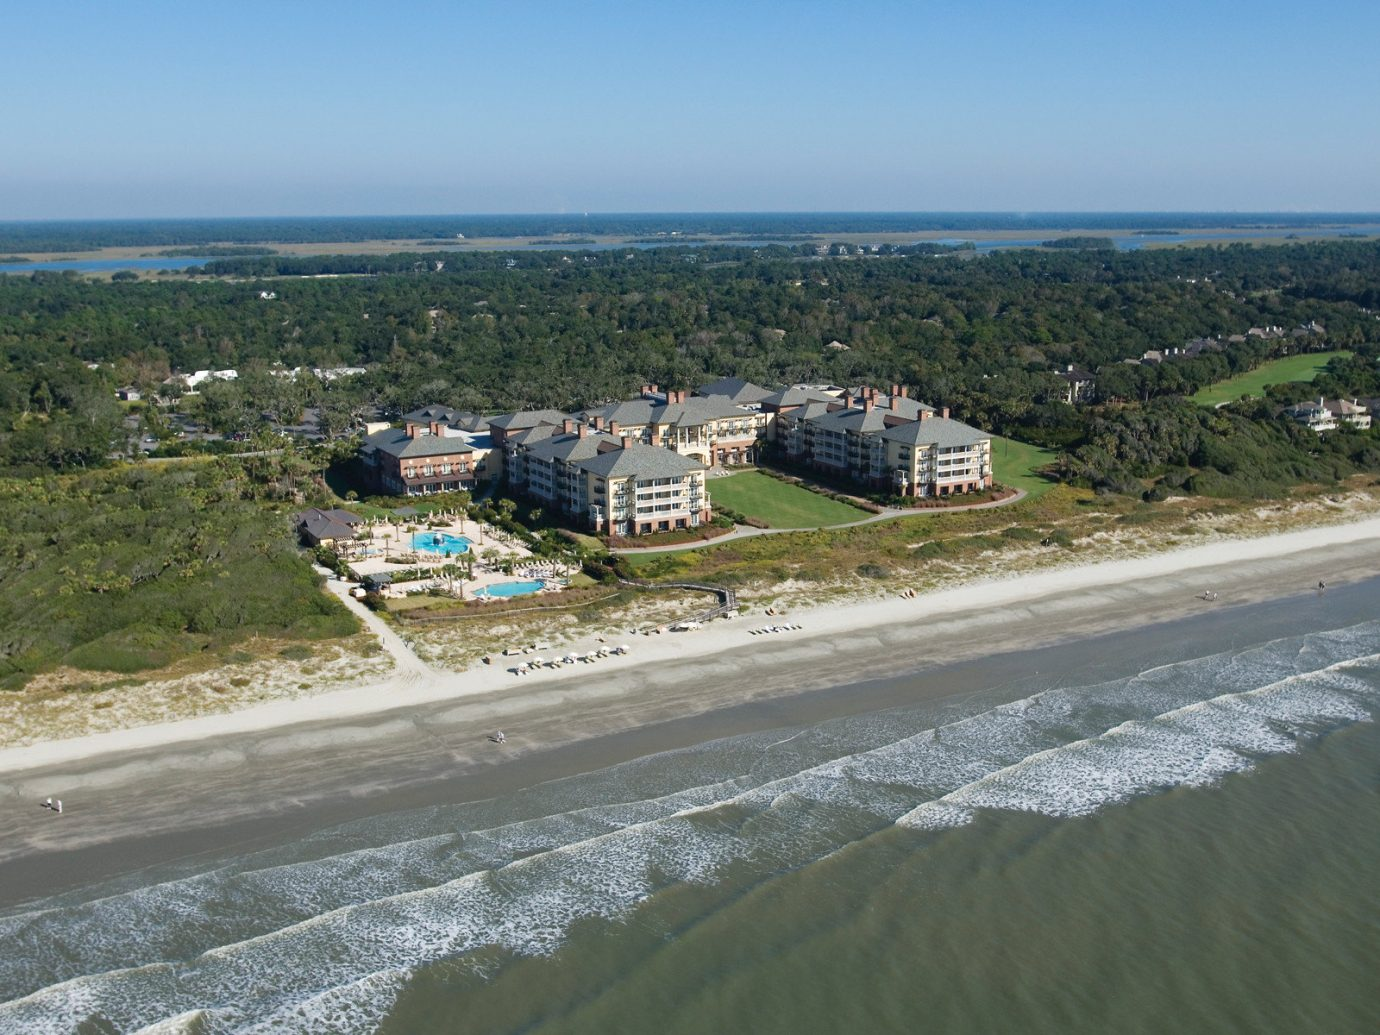 Beach East Coast USA Trip Ideas outdoor sky grass aerial photography Nature Coast mountain Sea bird's eye view shore River hill vacation reservoir cape rural area landscape bay terrain cliff waterway tower hillside highland